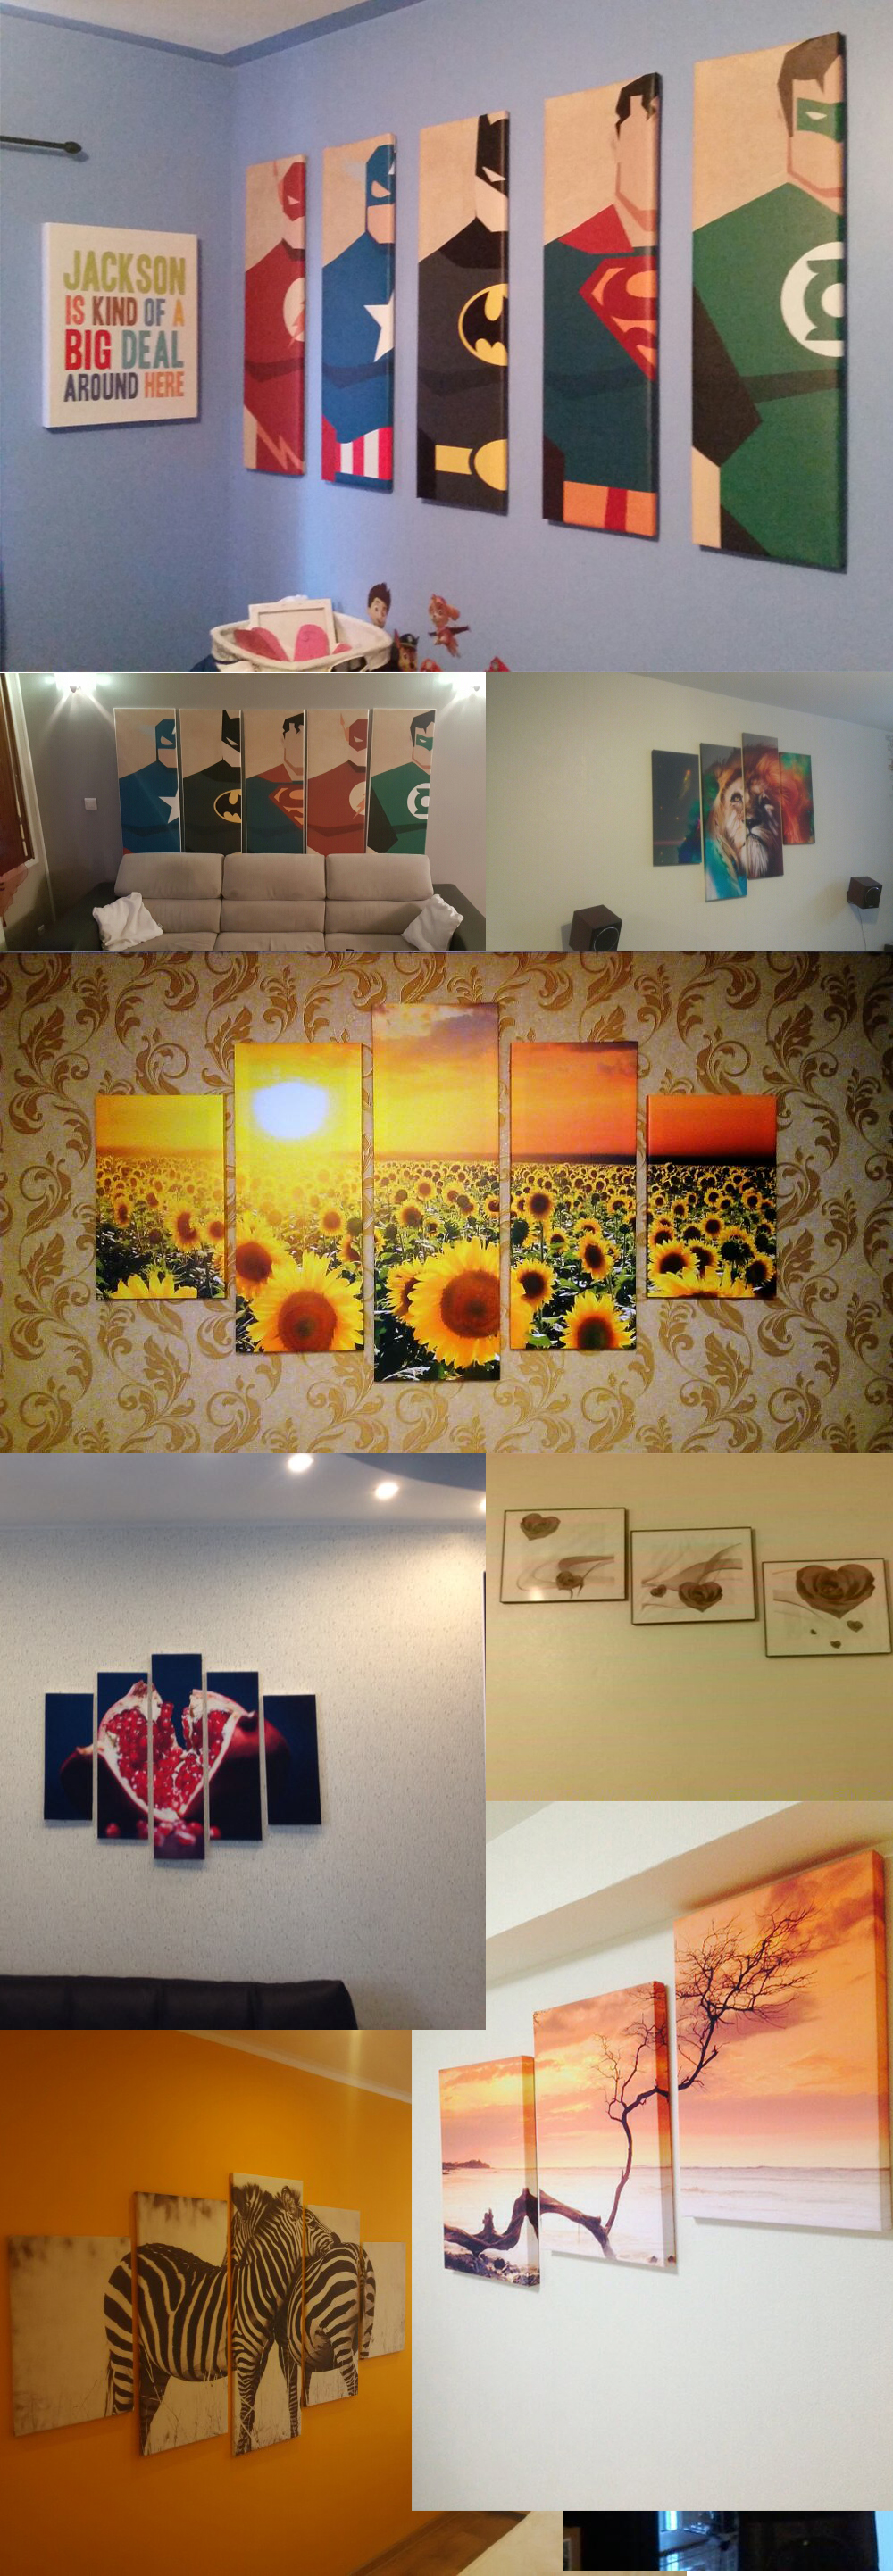 Cartoon Room: Unframed 5 Pieces Wall Art Oil Canvas Painting Printed